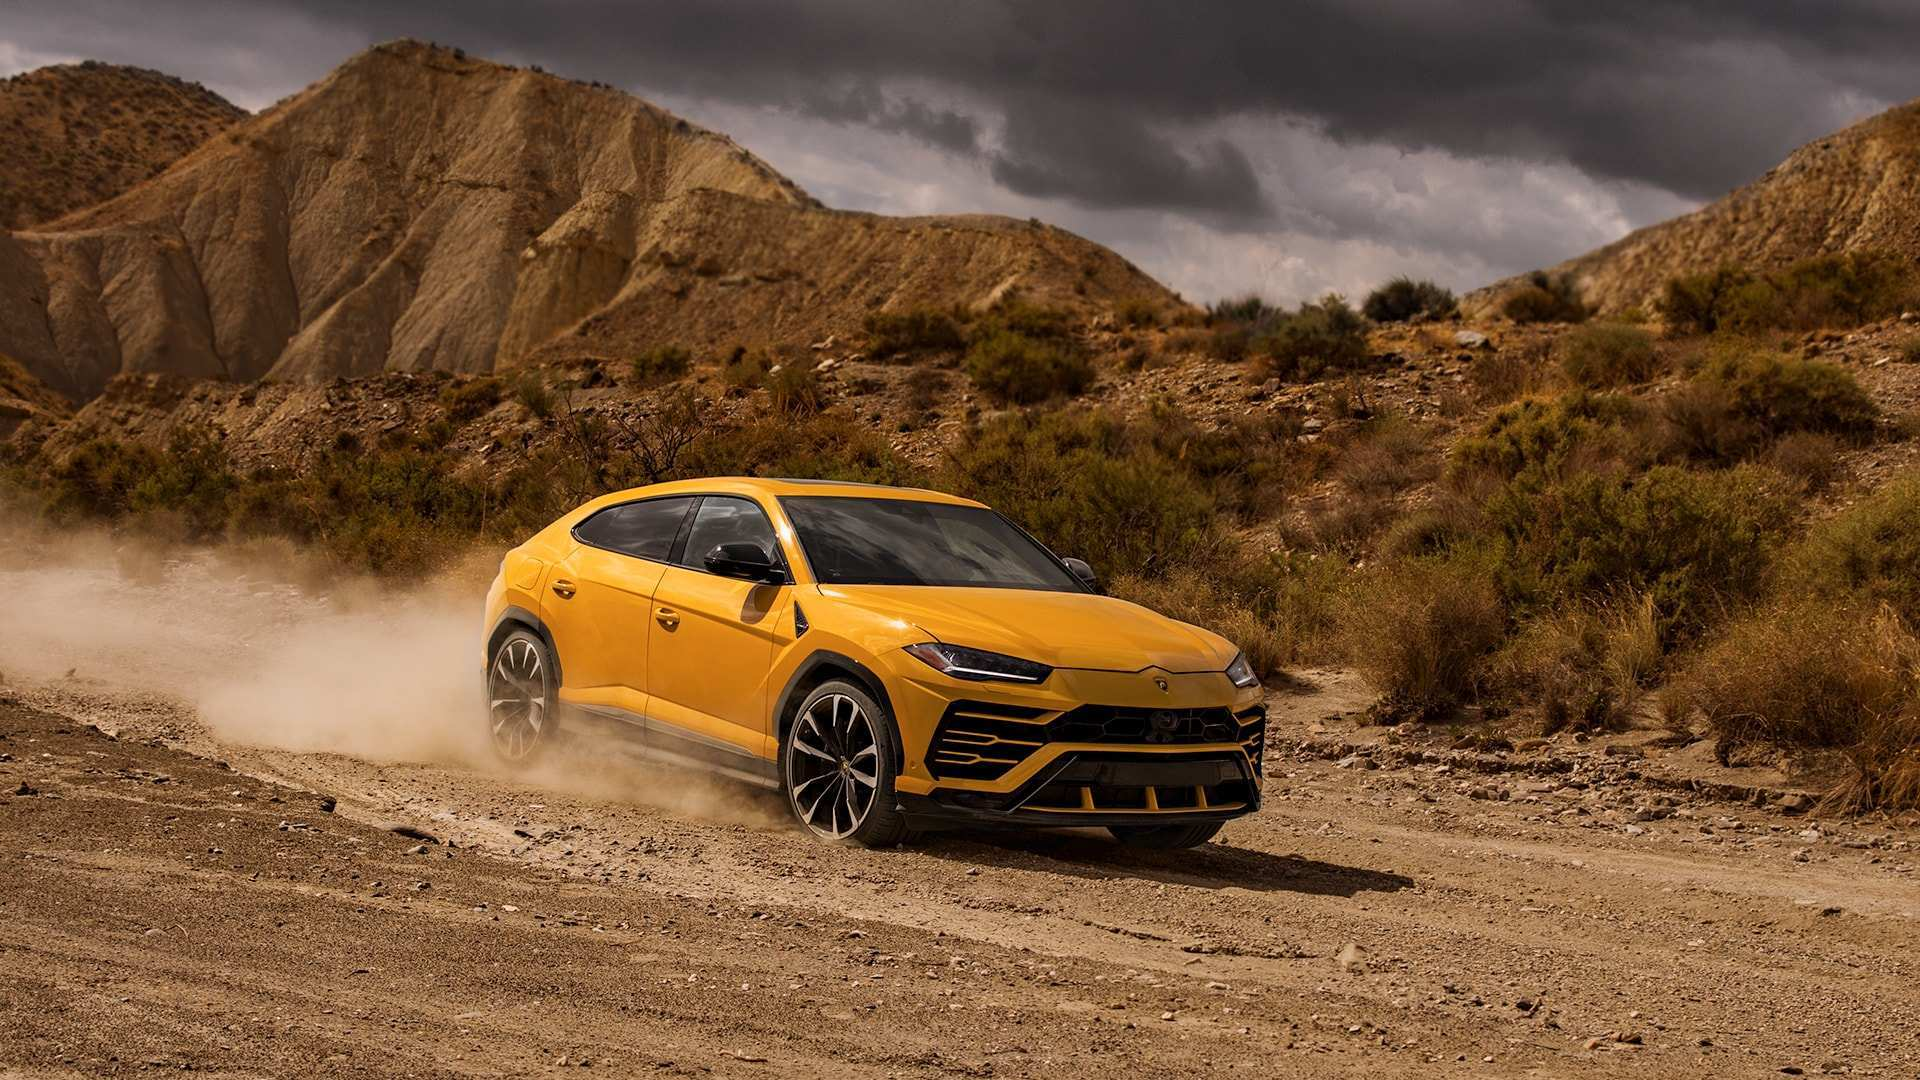 64 All New 2019 Lamborghini Urus Price Price and Review by 2019 Lamborghini Urus Price